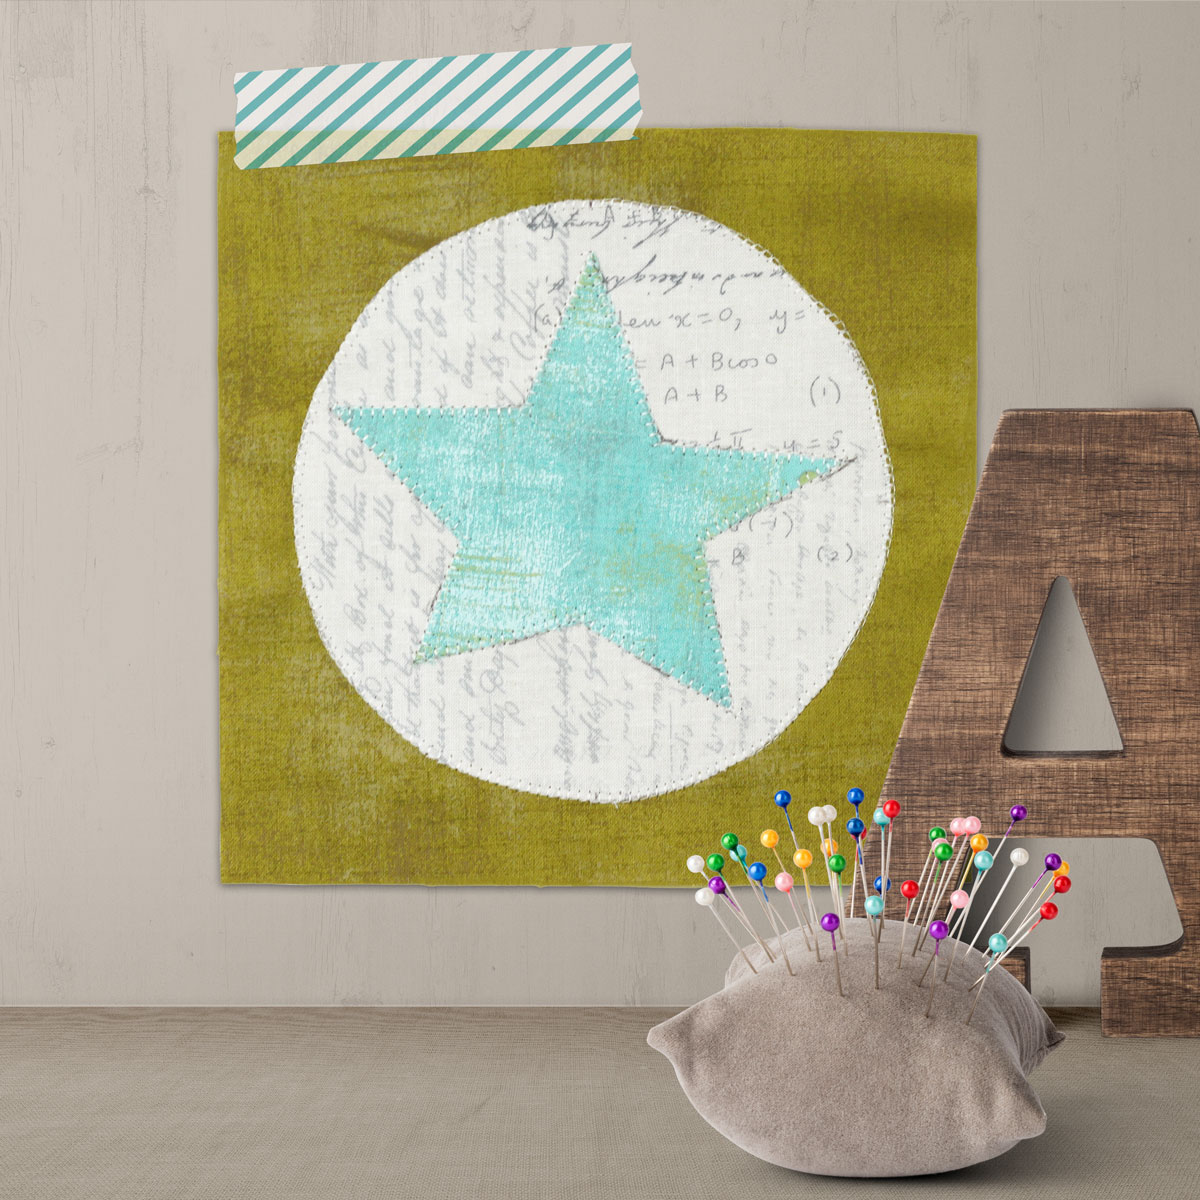 Free quilt along Blockheads 2018, Block 21: Circle and Star Fabrics used in the block are from Moda, Basic Grey GRUNGE and Zen Chic PAPER